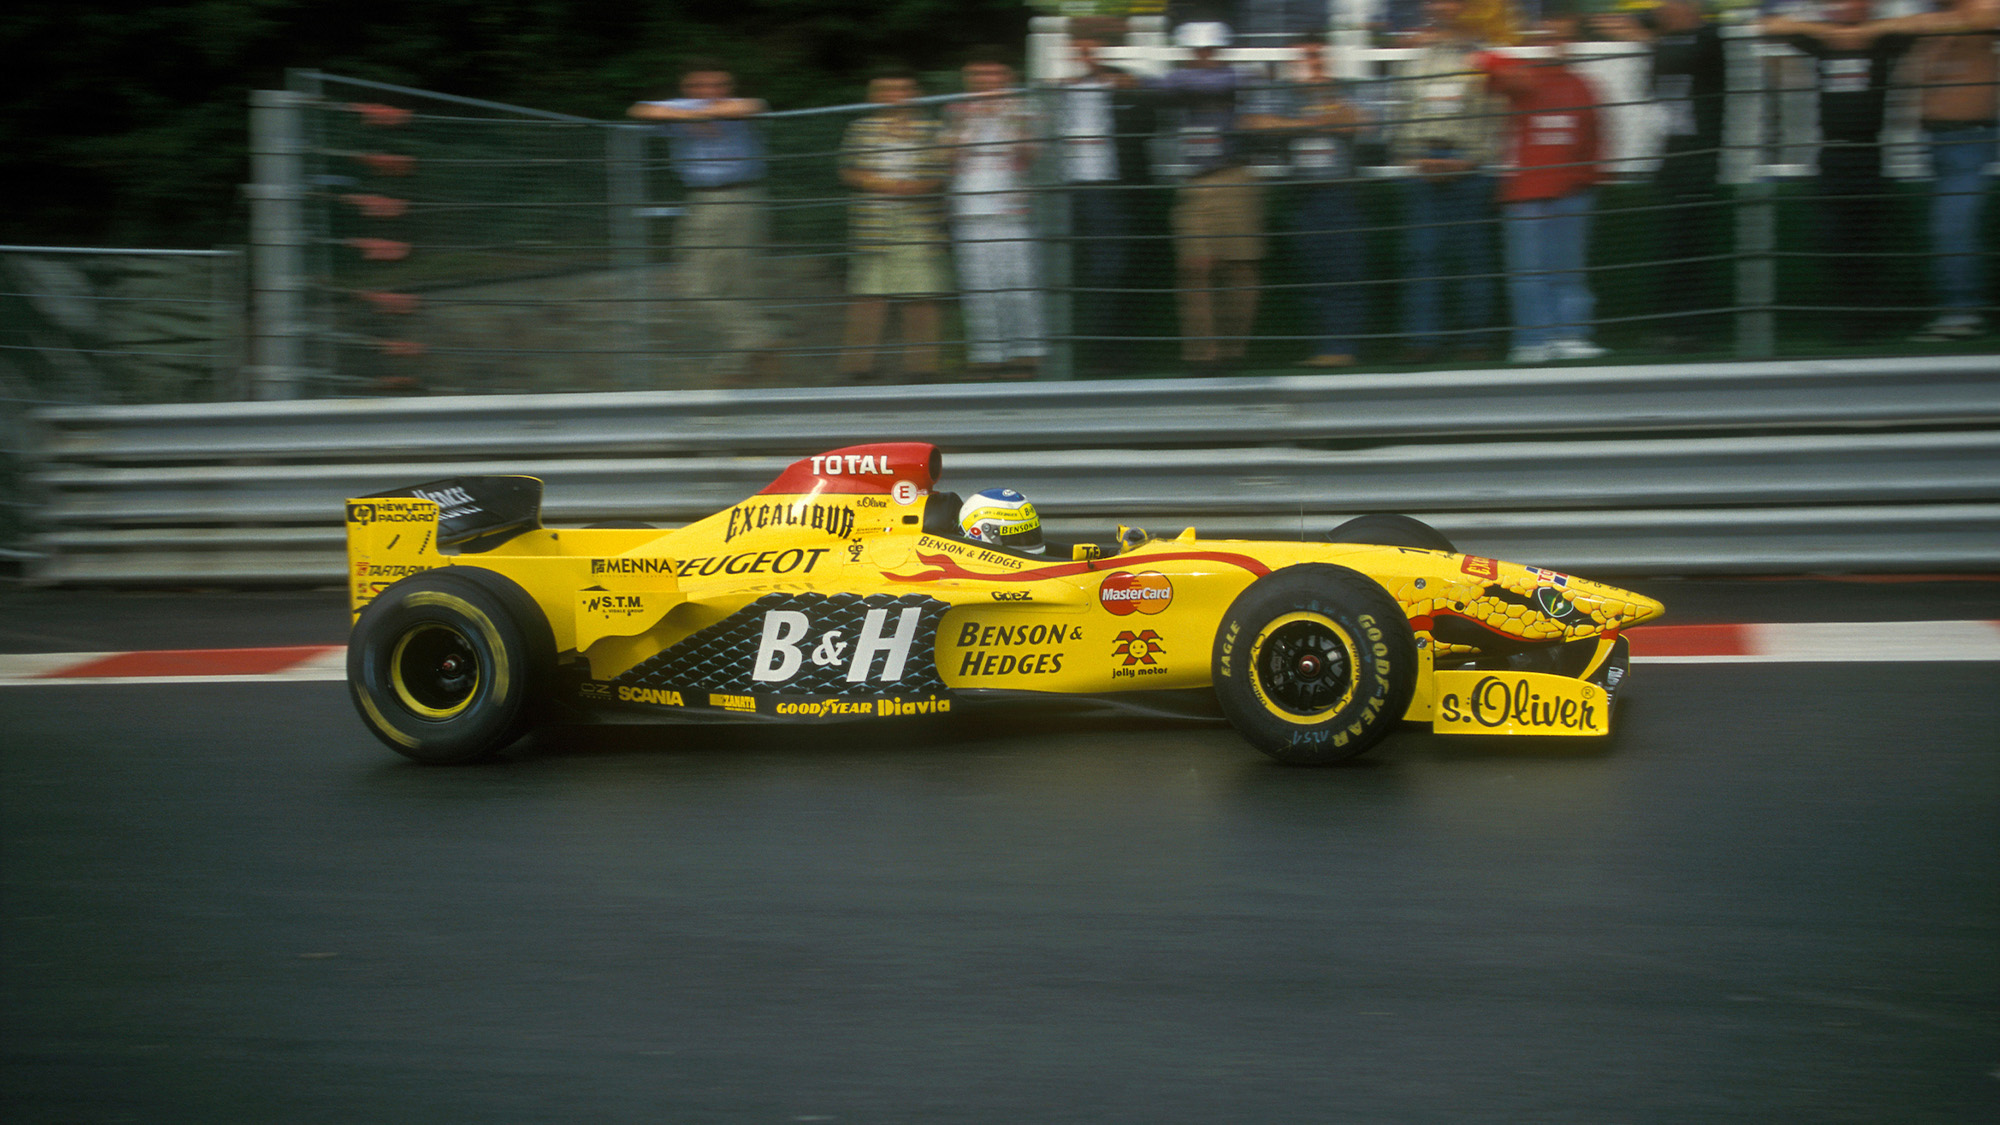 Giancarlo Fisichella on his way to pole position at the 1997 Belgian Grand Prix